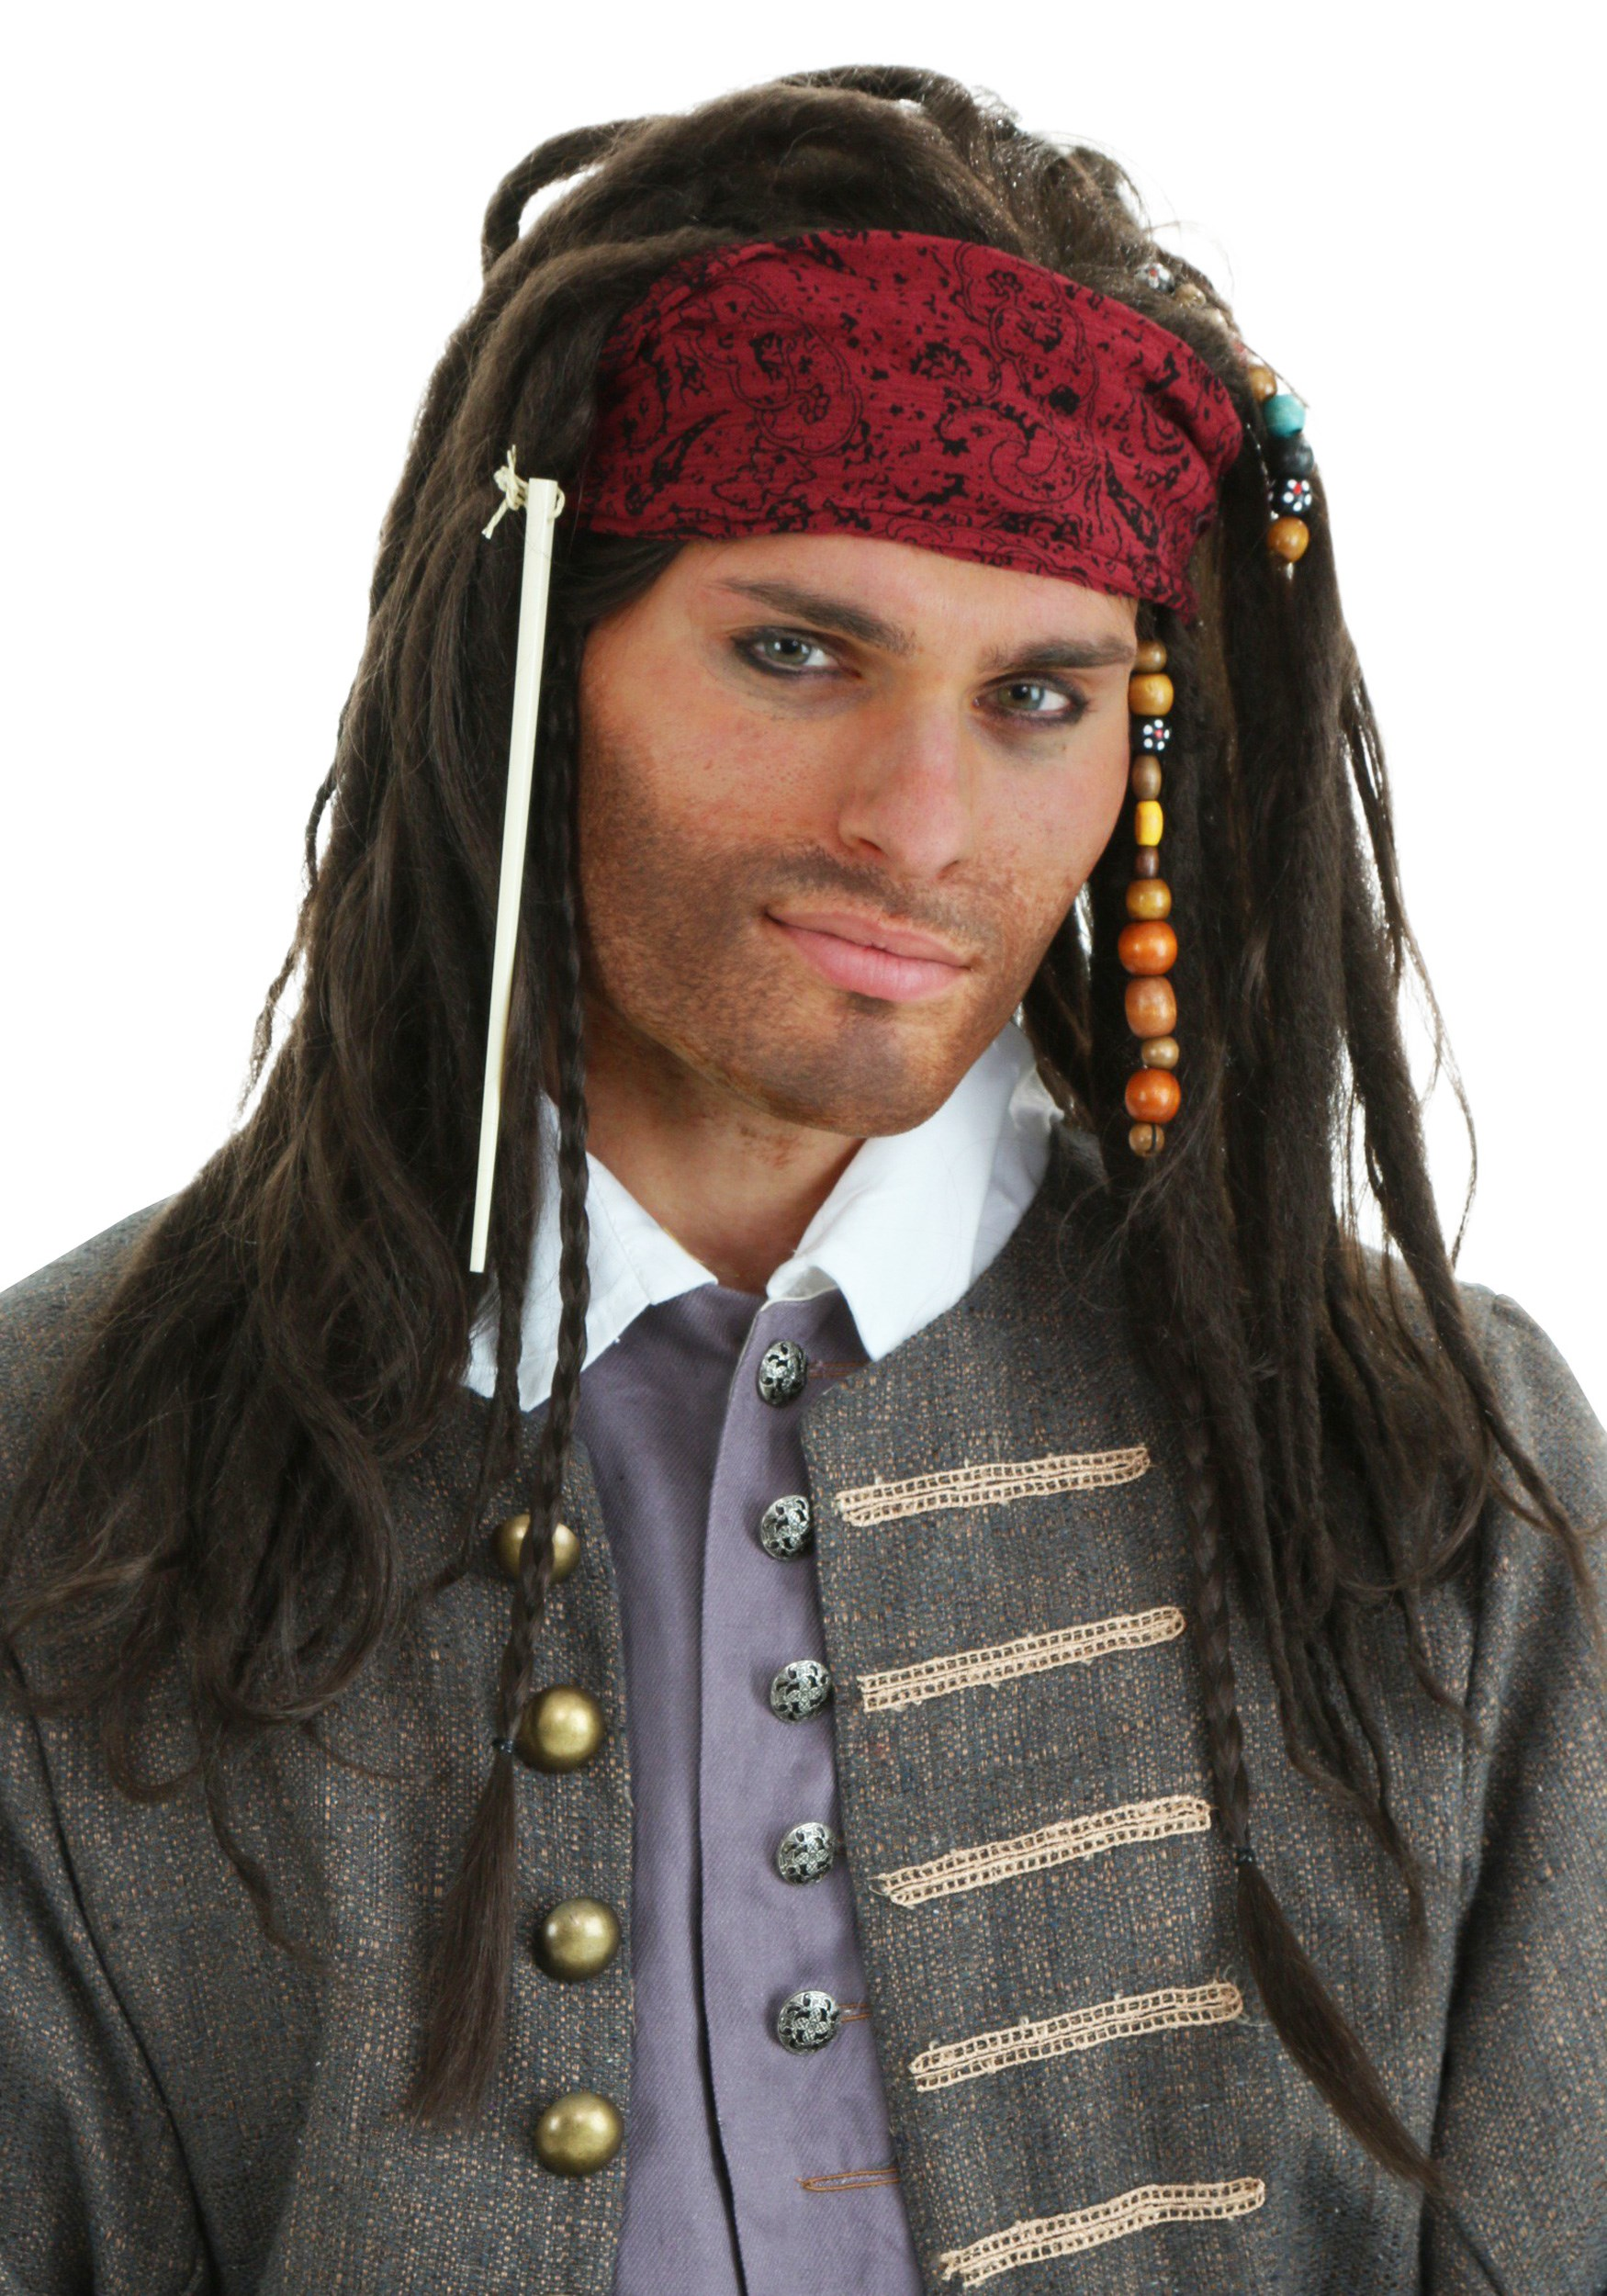 ... Pirate wig is a perfect complement to your Jack Sparrow costume!